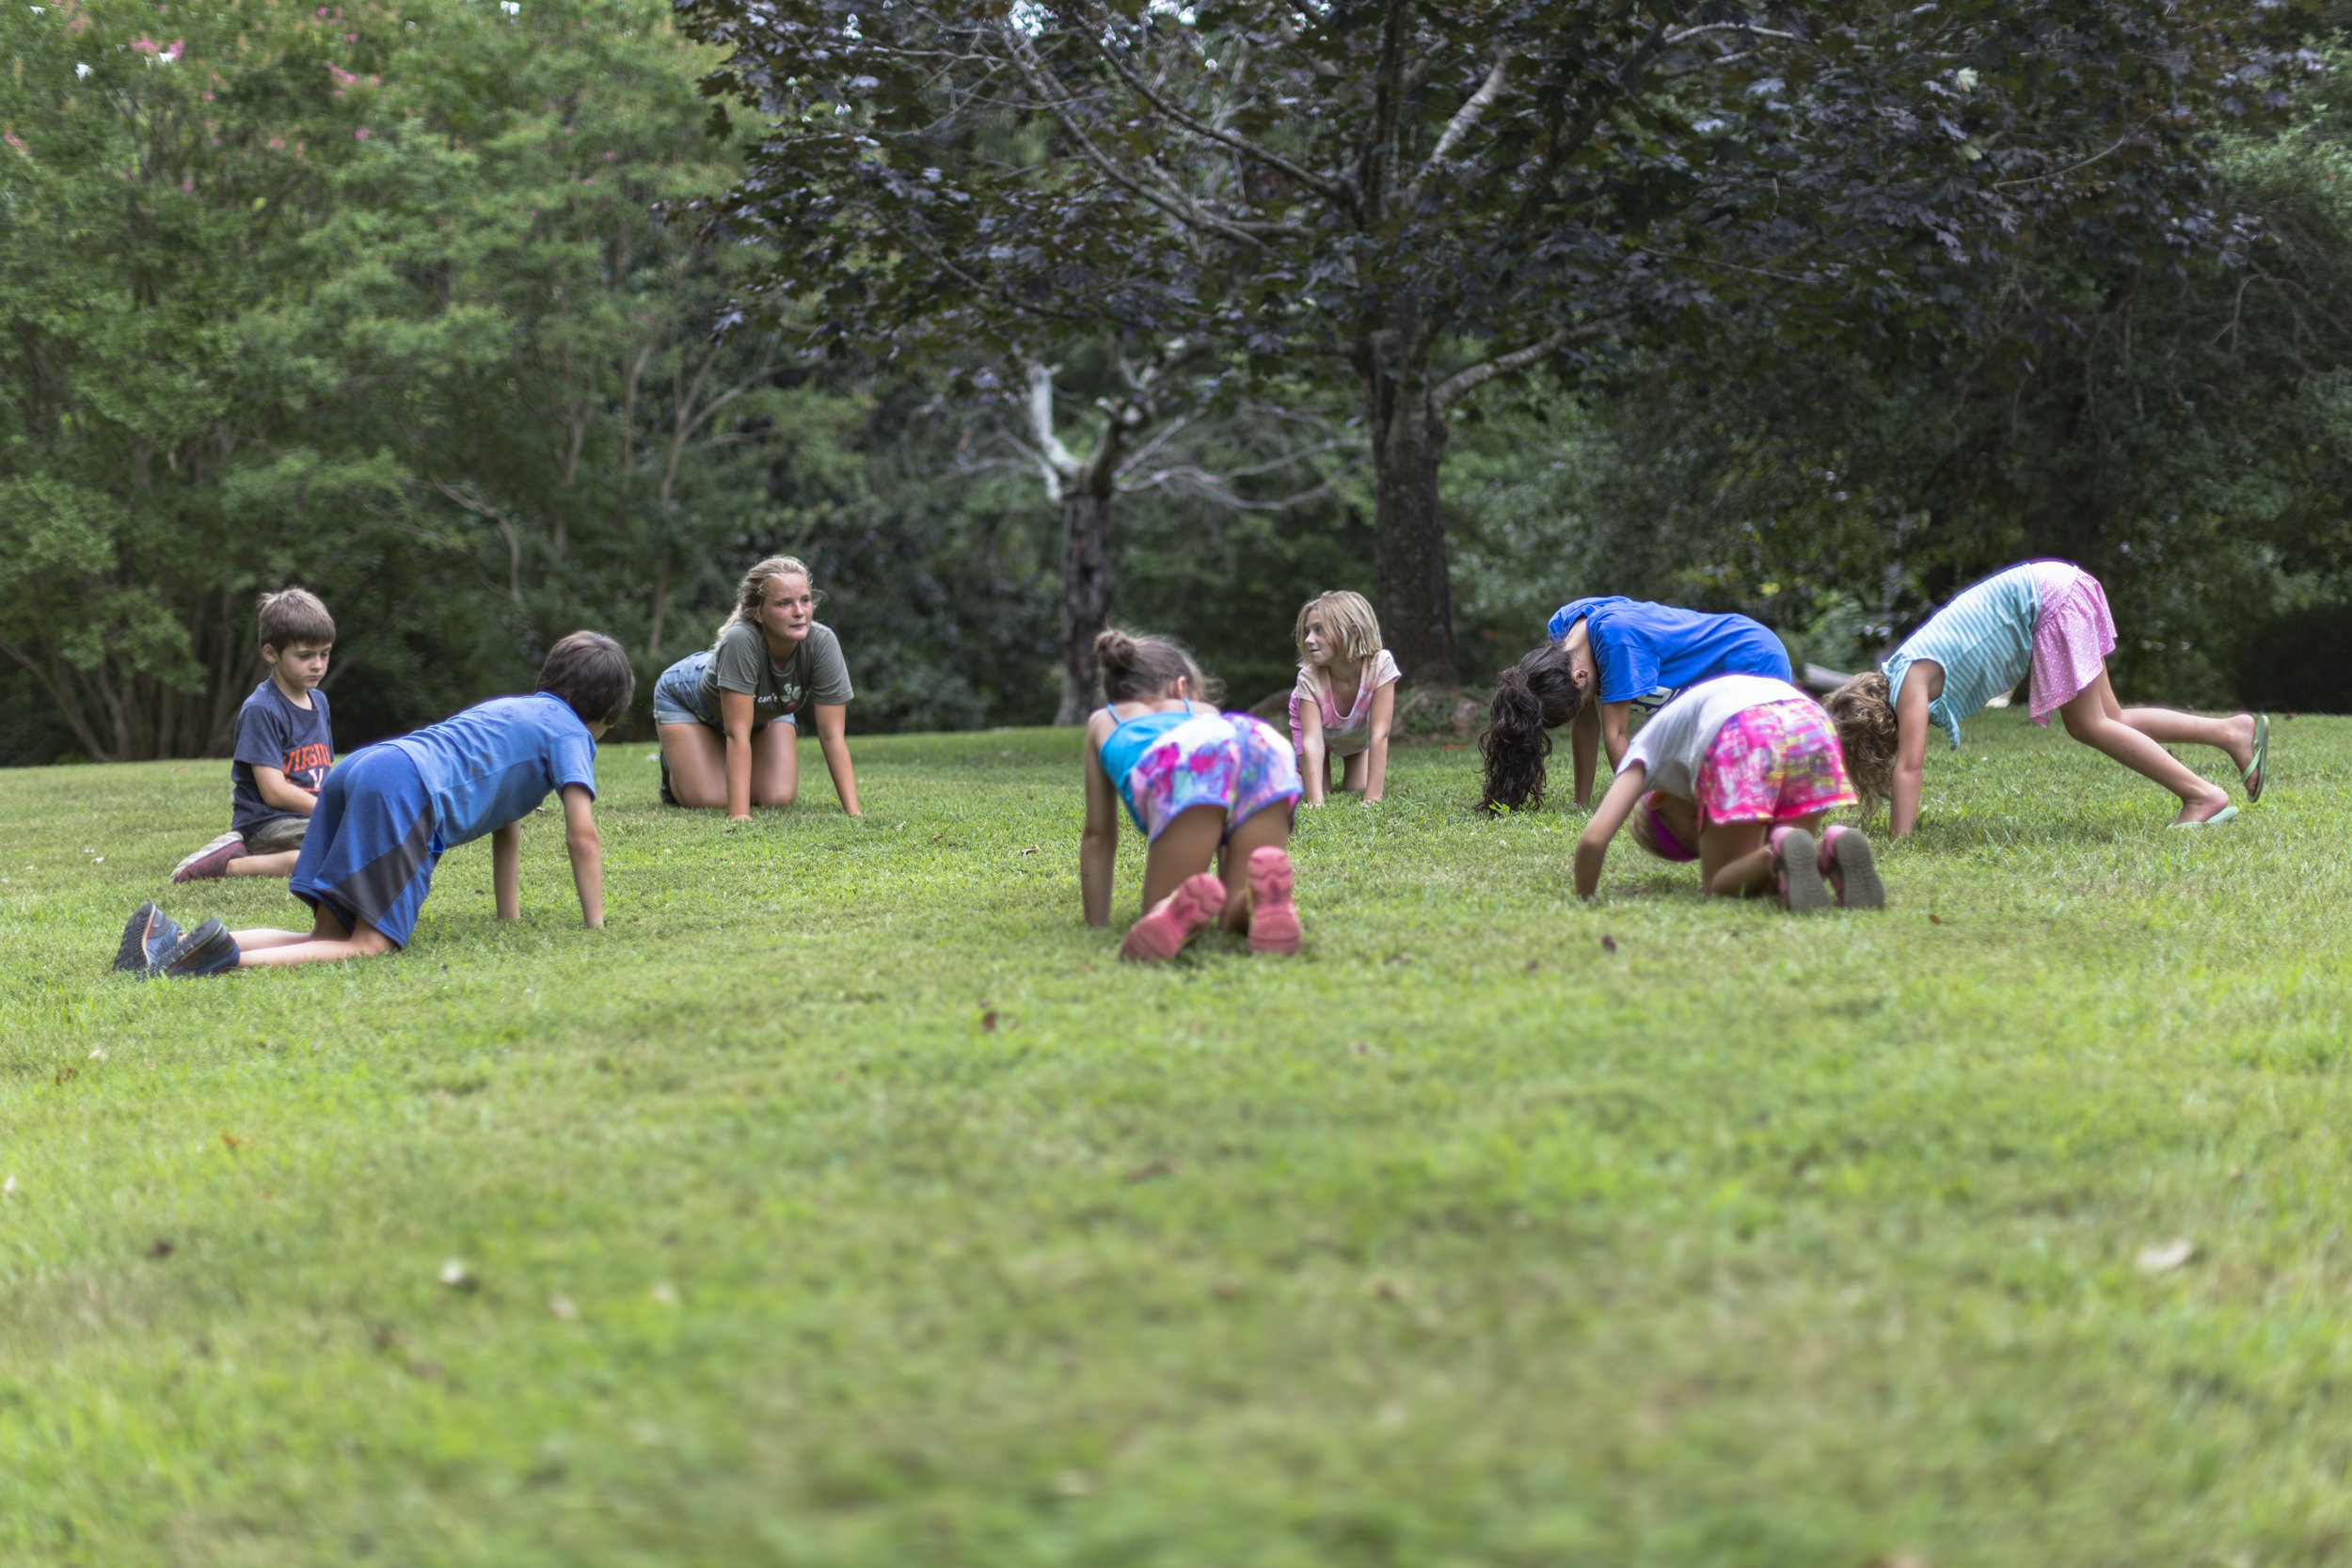 group of children play in grass at camp kumbayah in lynchburg virginia